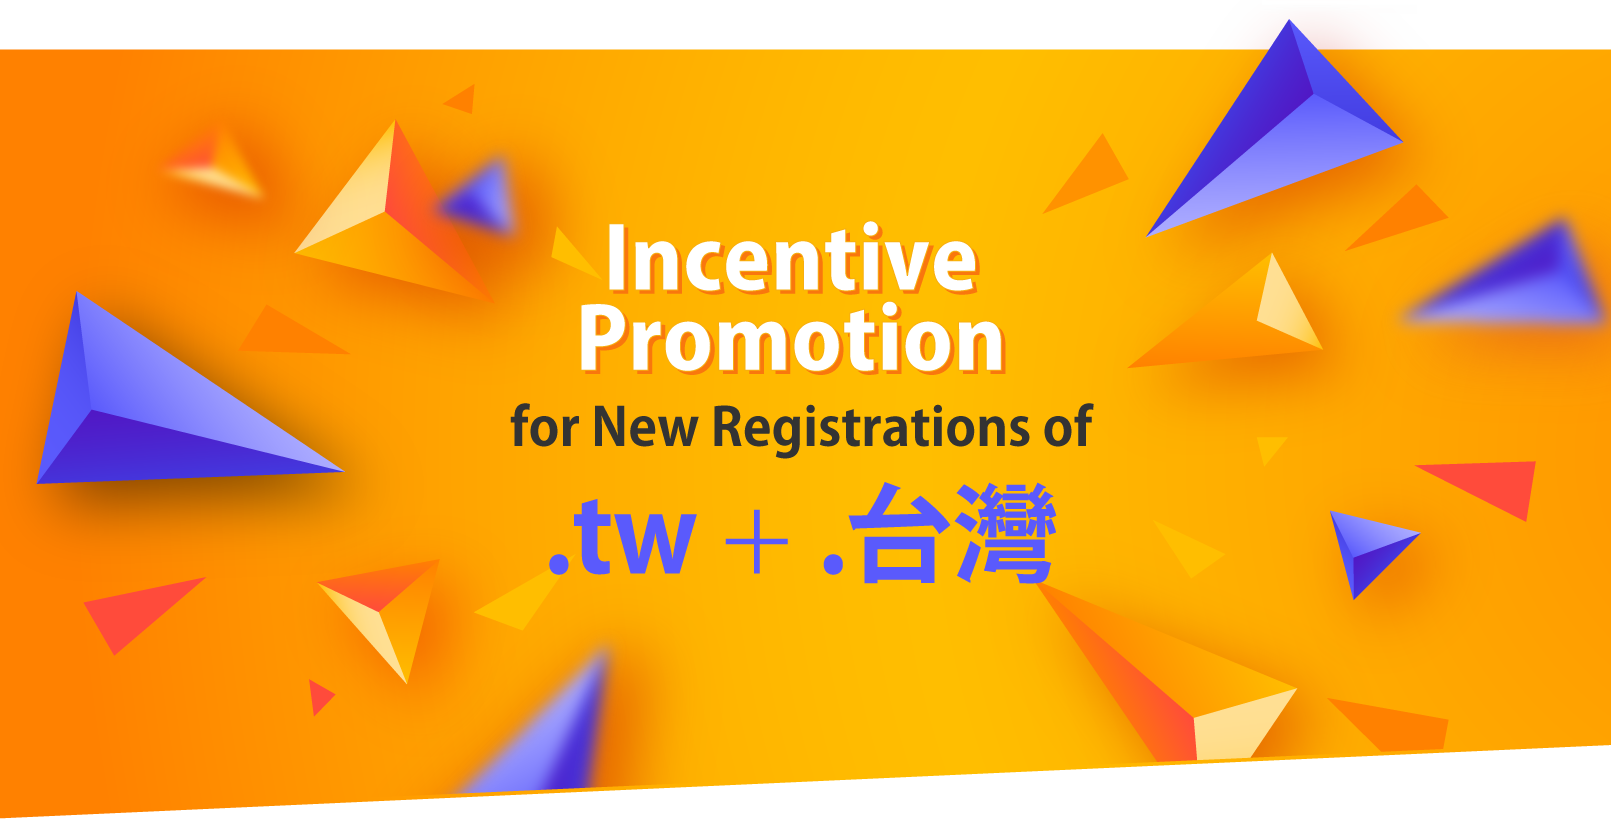 Incentive Promotion for New Registrations of .tw+.台灣